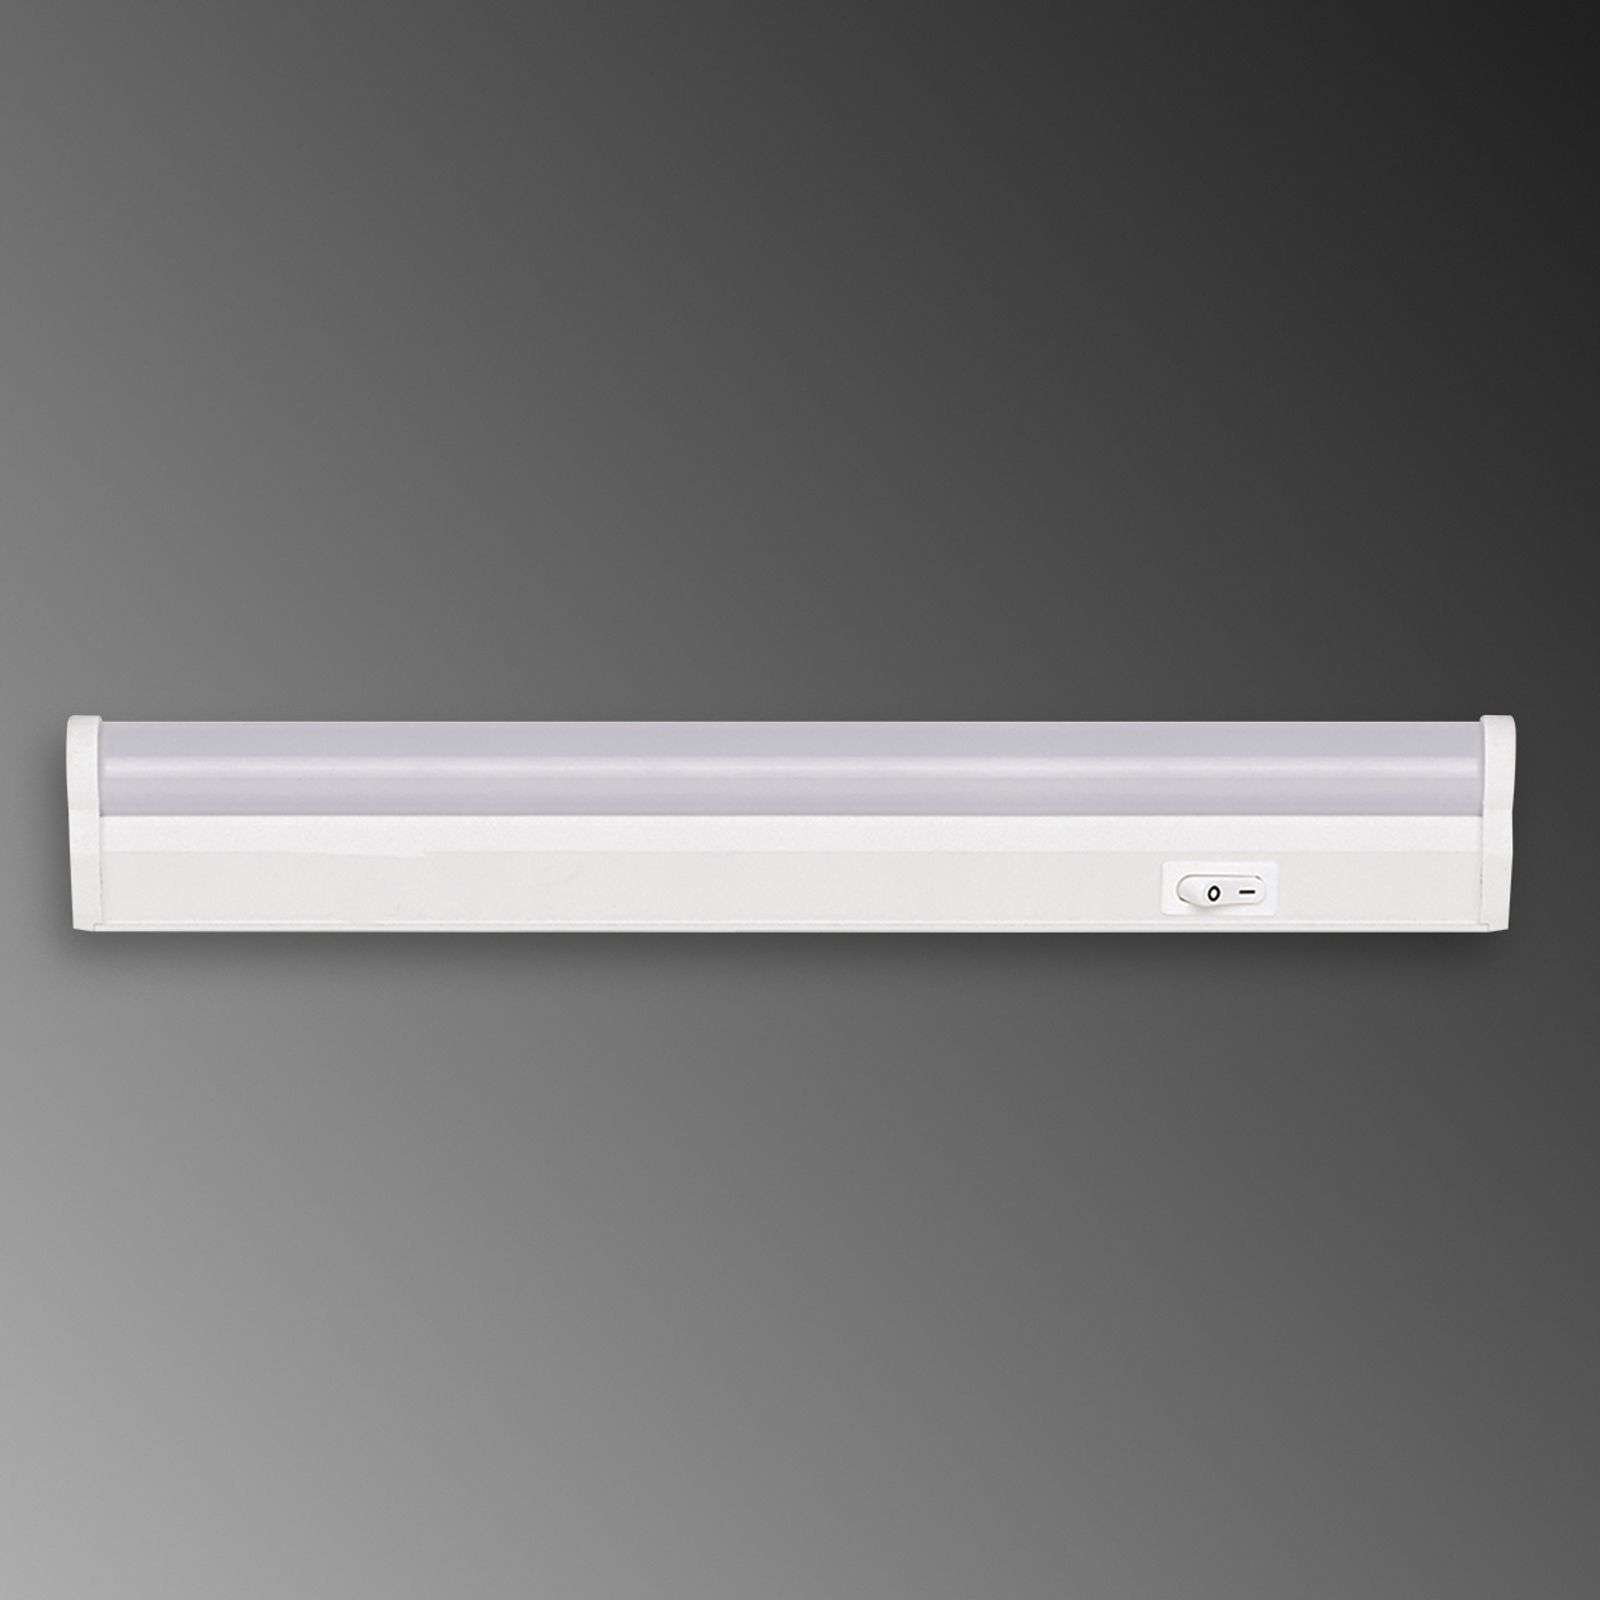 lampada da incasso Power-LED 982, 3,3W, 31,5cm